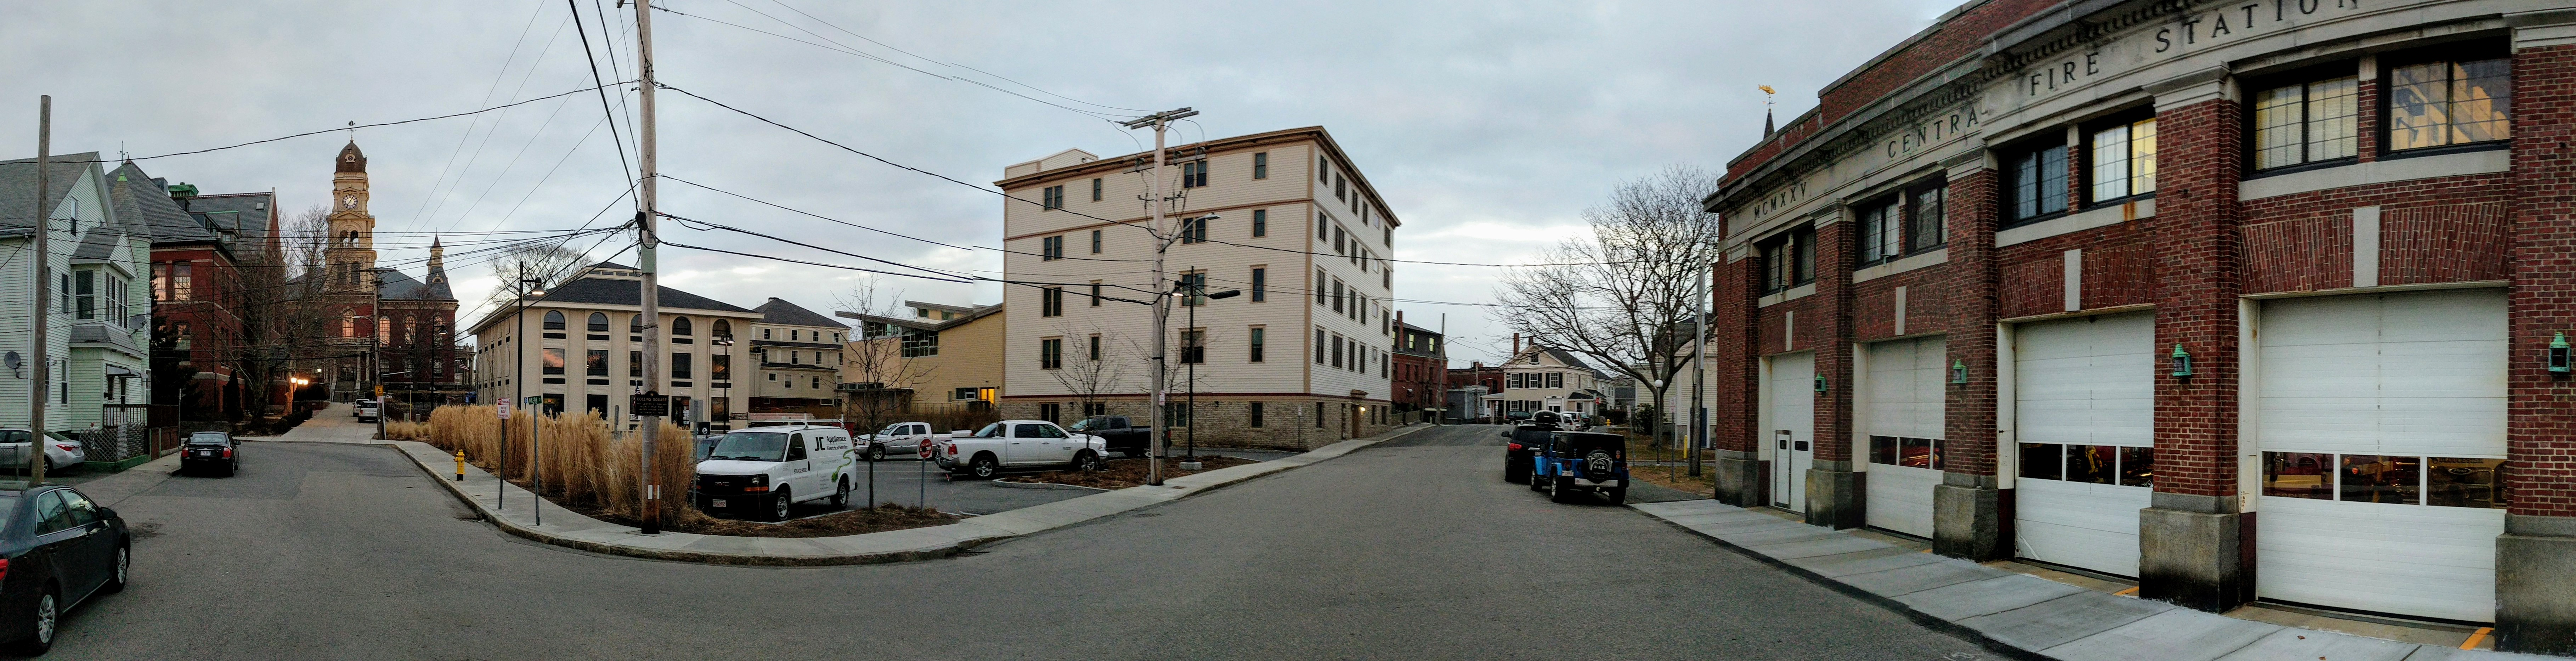 PANO_20170129Monell addition back and context surroundings_© c ryan.jpg